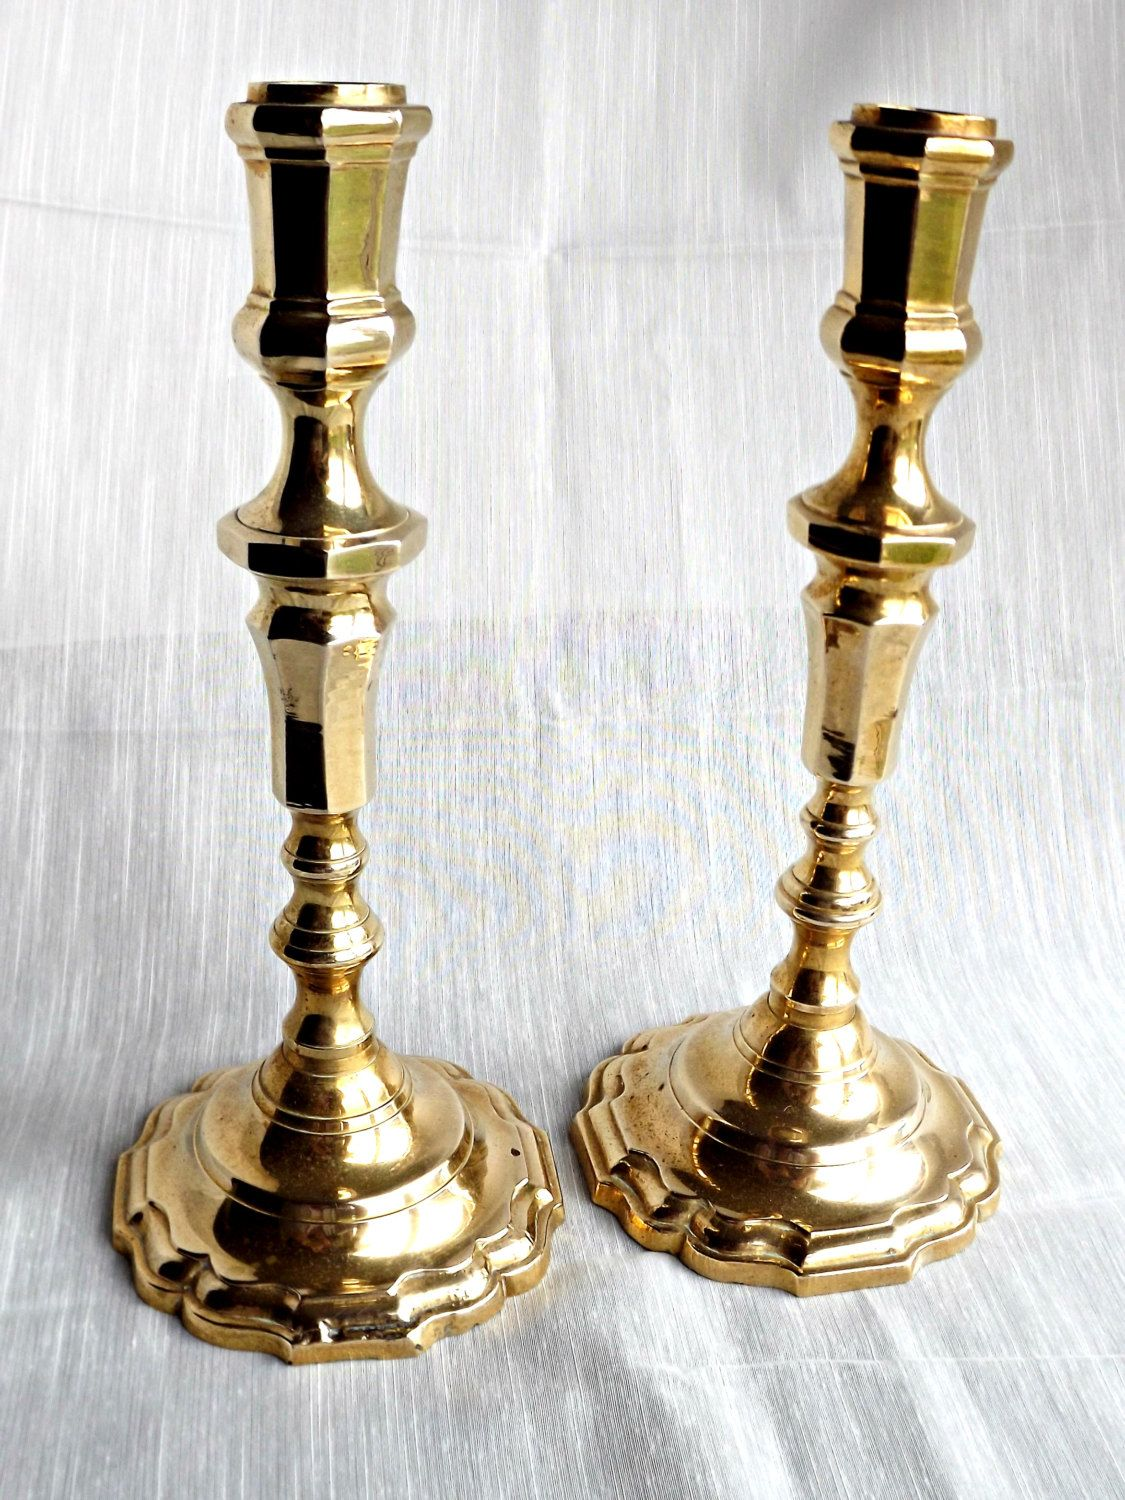 Solid Brass Candle Holders, Vintage Brass Candle Holders